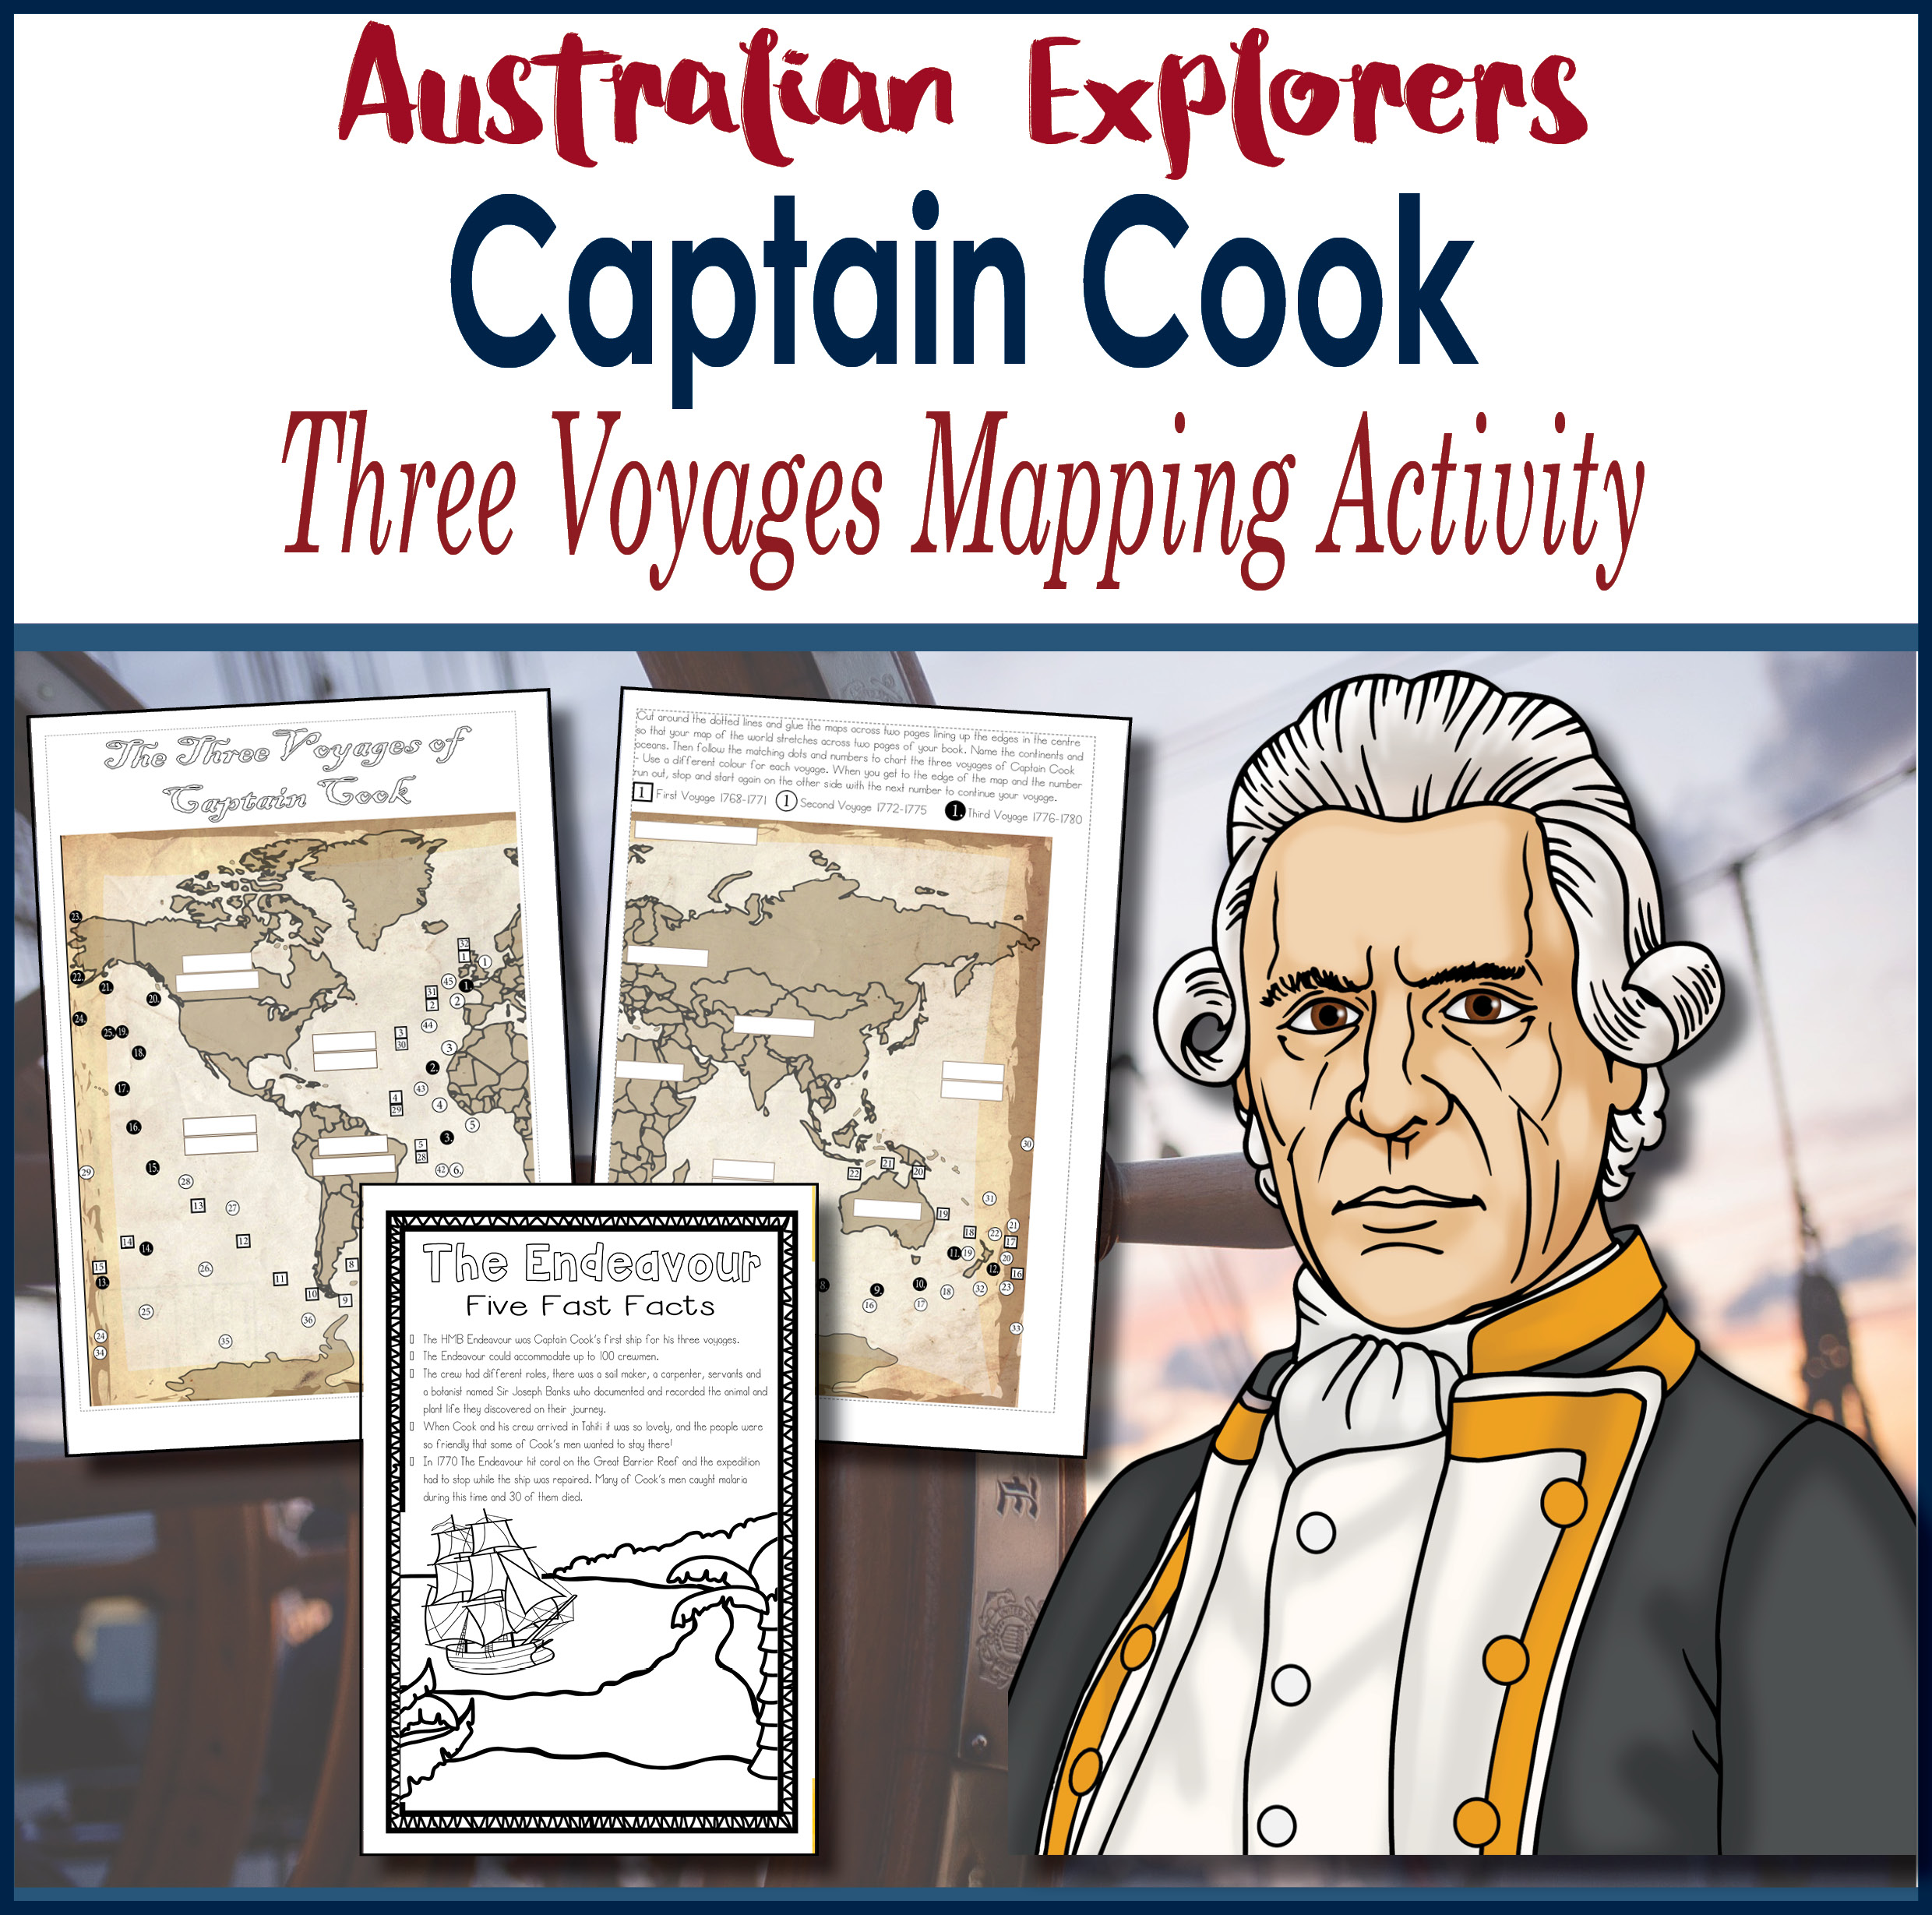 Australian Explorers Captain Cook Three Voyages Mapping Activity